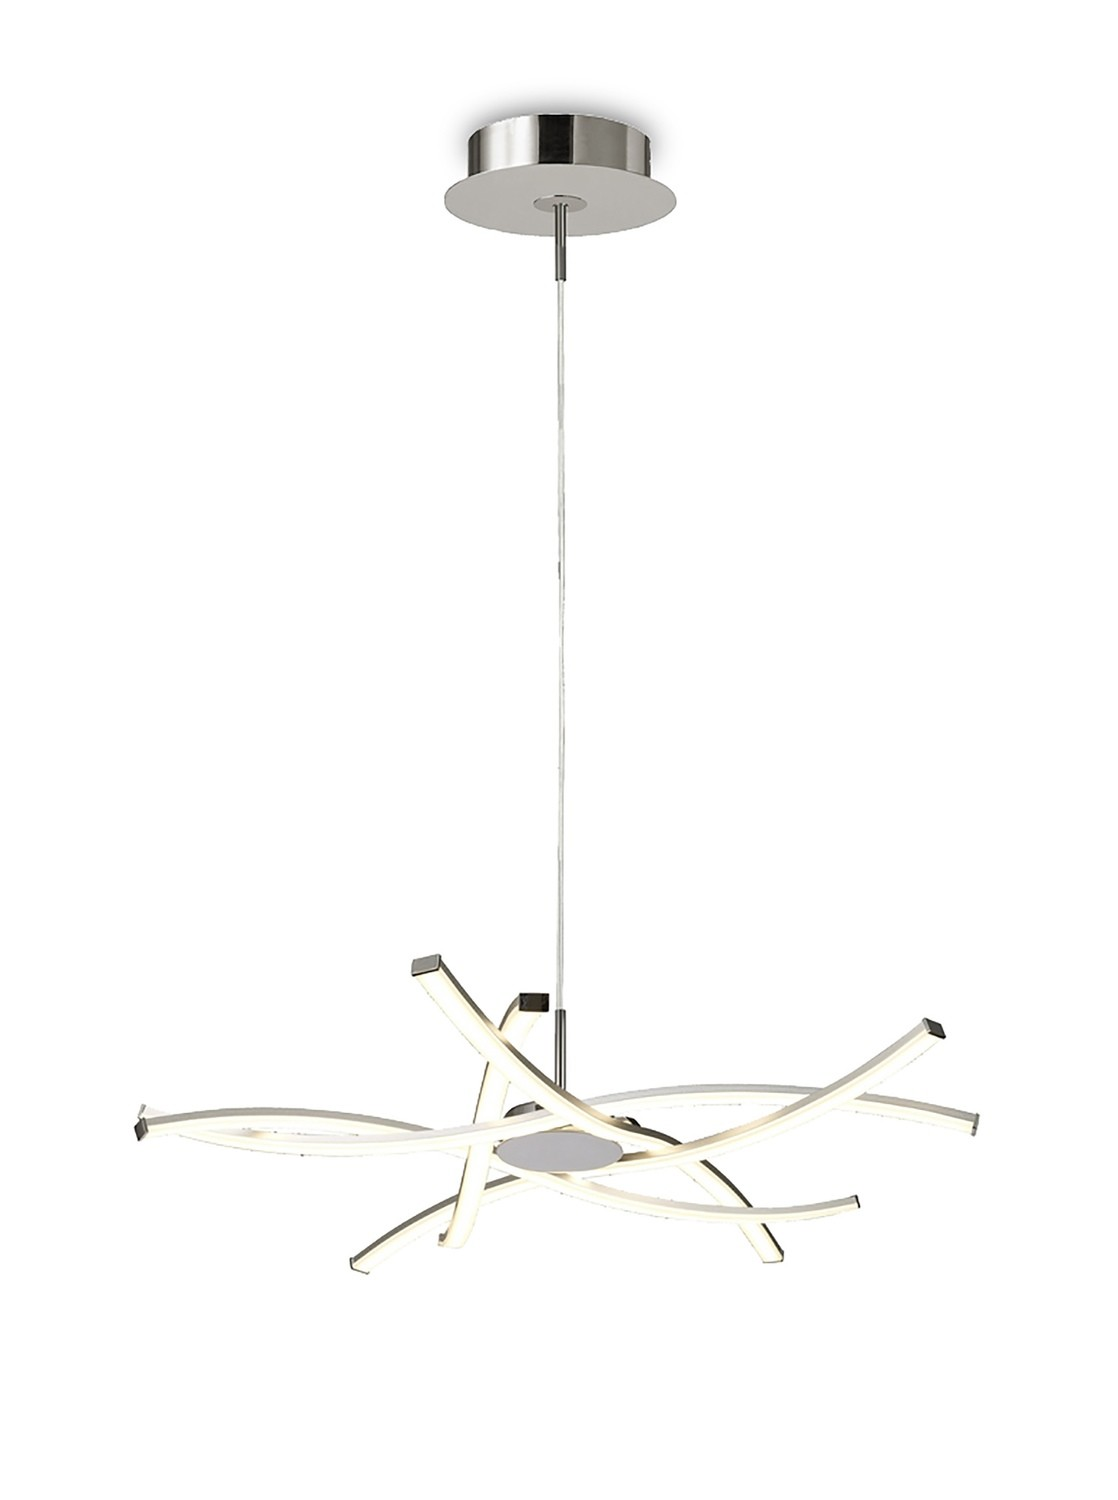 Aire LED Pendant 69cm Round 42W 3000K, 3700lm, Silver/Frosted Acrylic/Polished Chrome